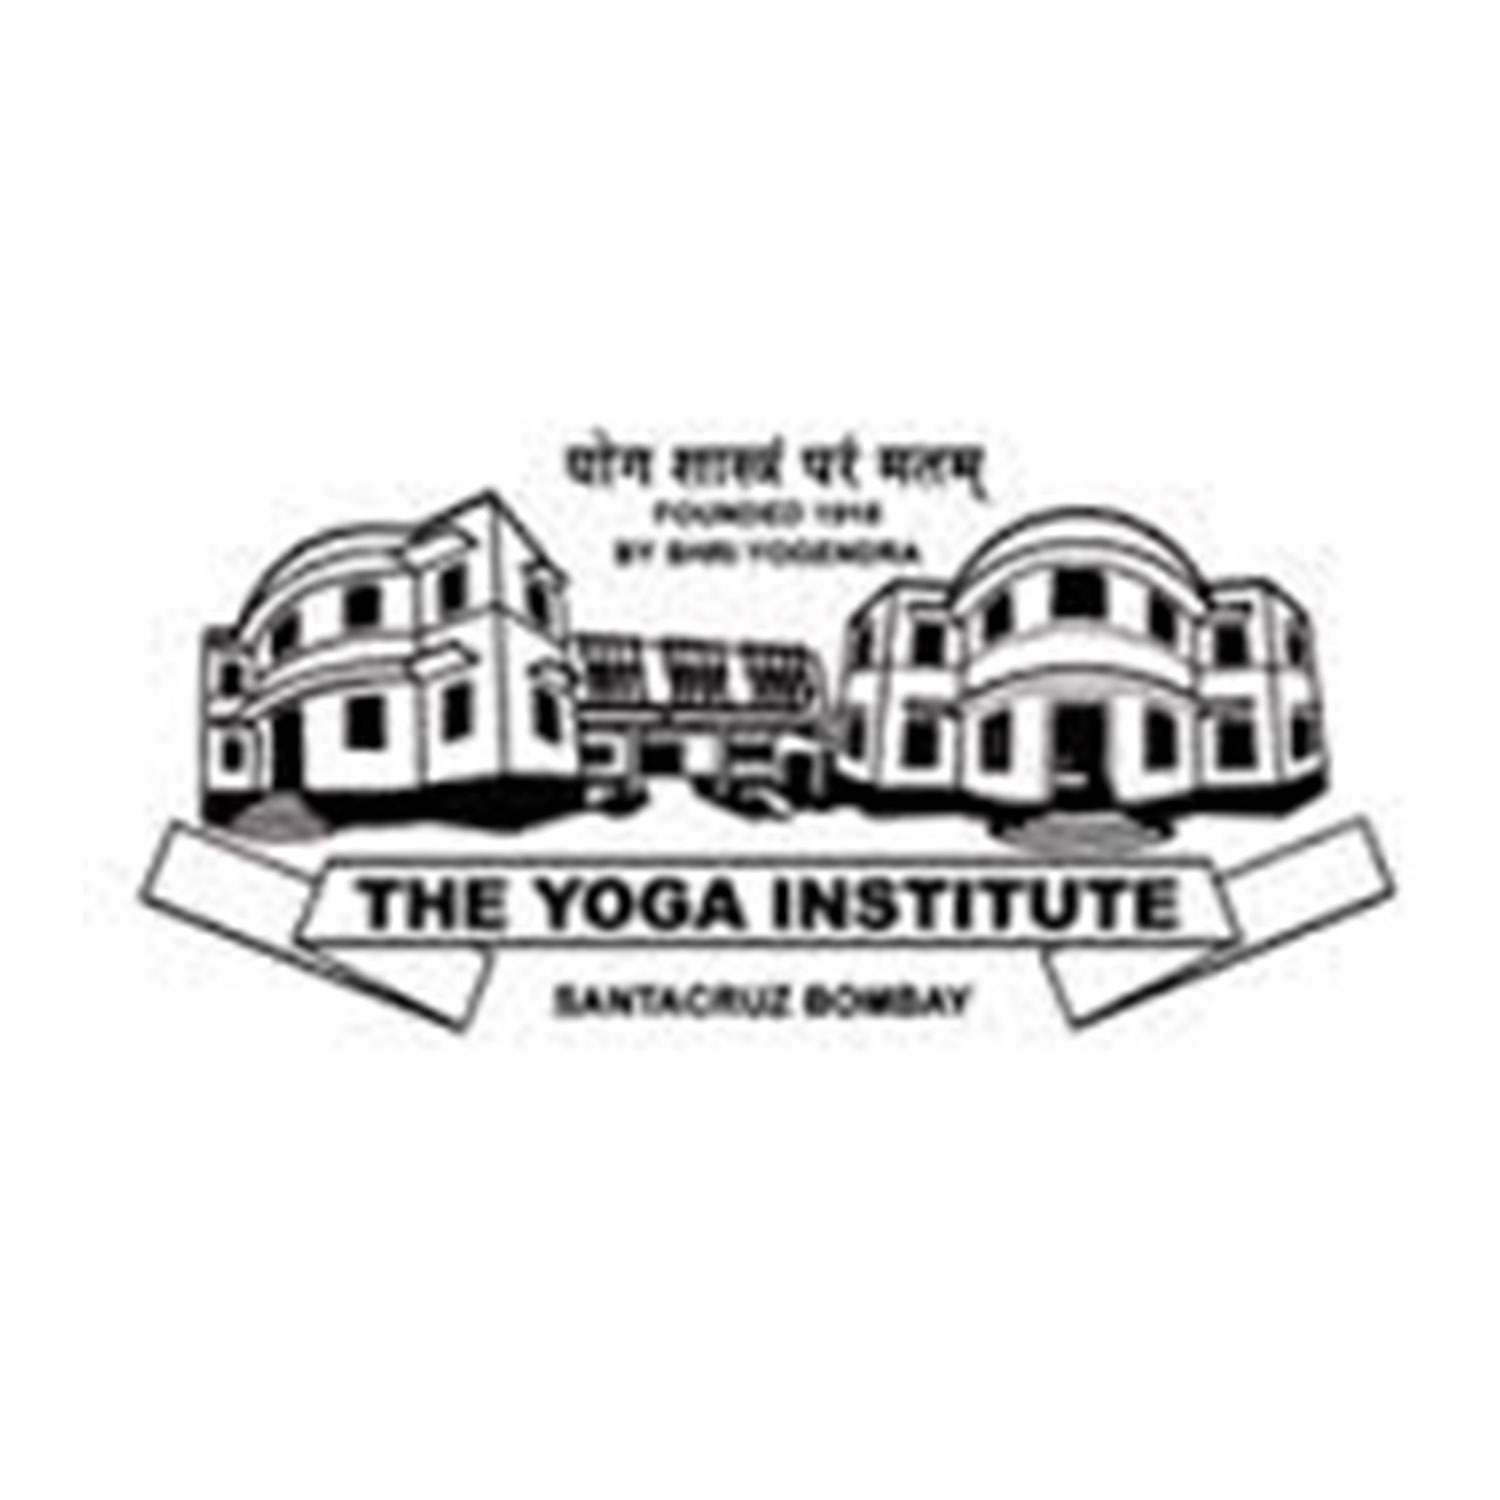 Yoga Institute of Mumbai